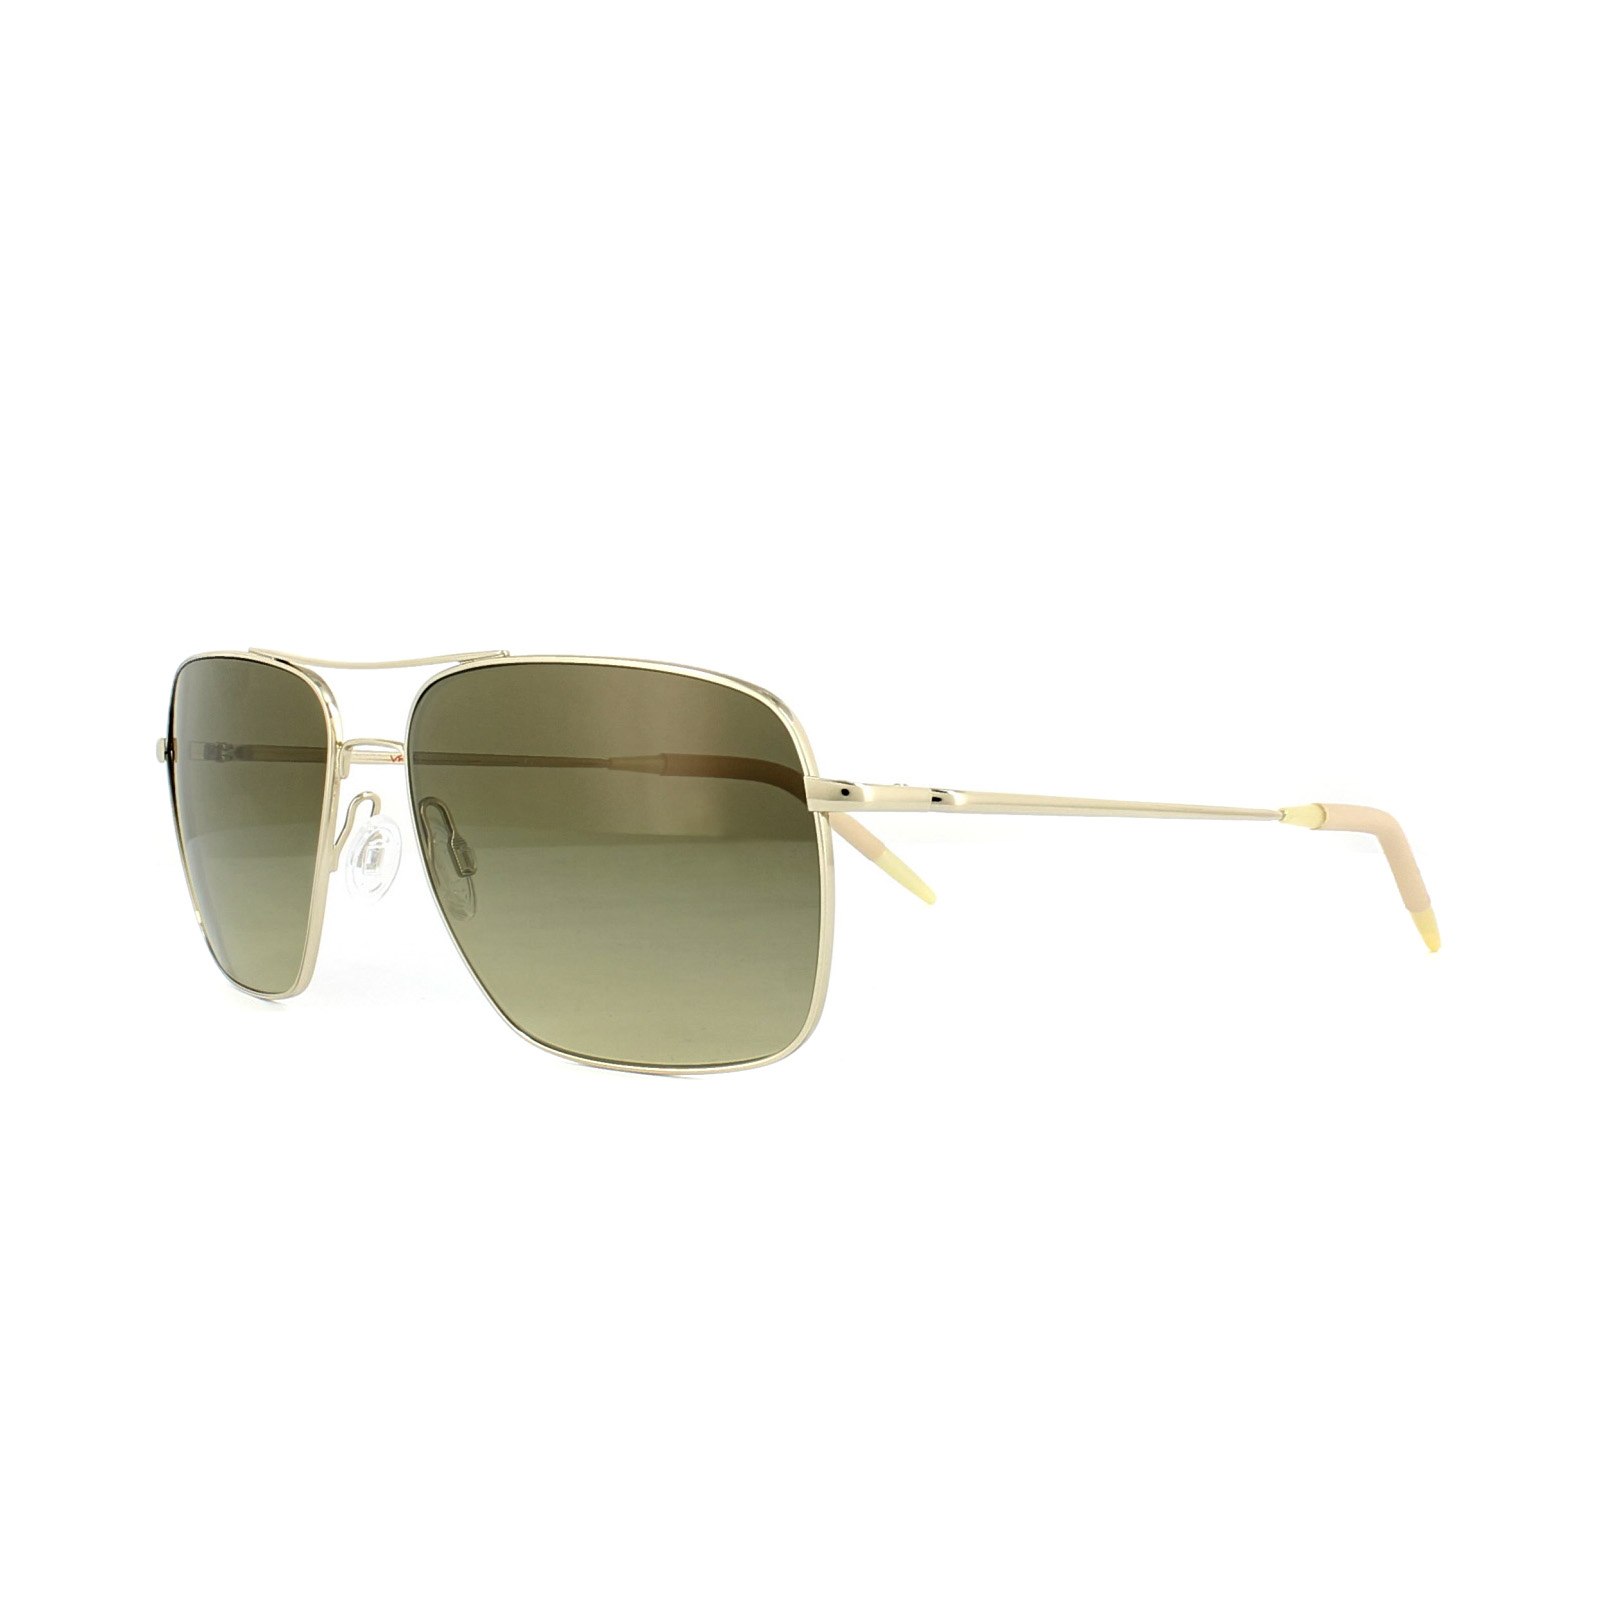 d2f1f525676 Sentinel Oliver Peoples Sunglasses Clifton 1150 5035 85 Gold Chrome Olive  Photochromic